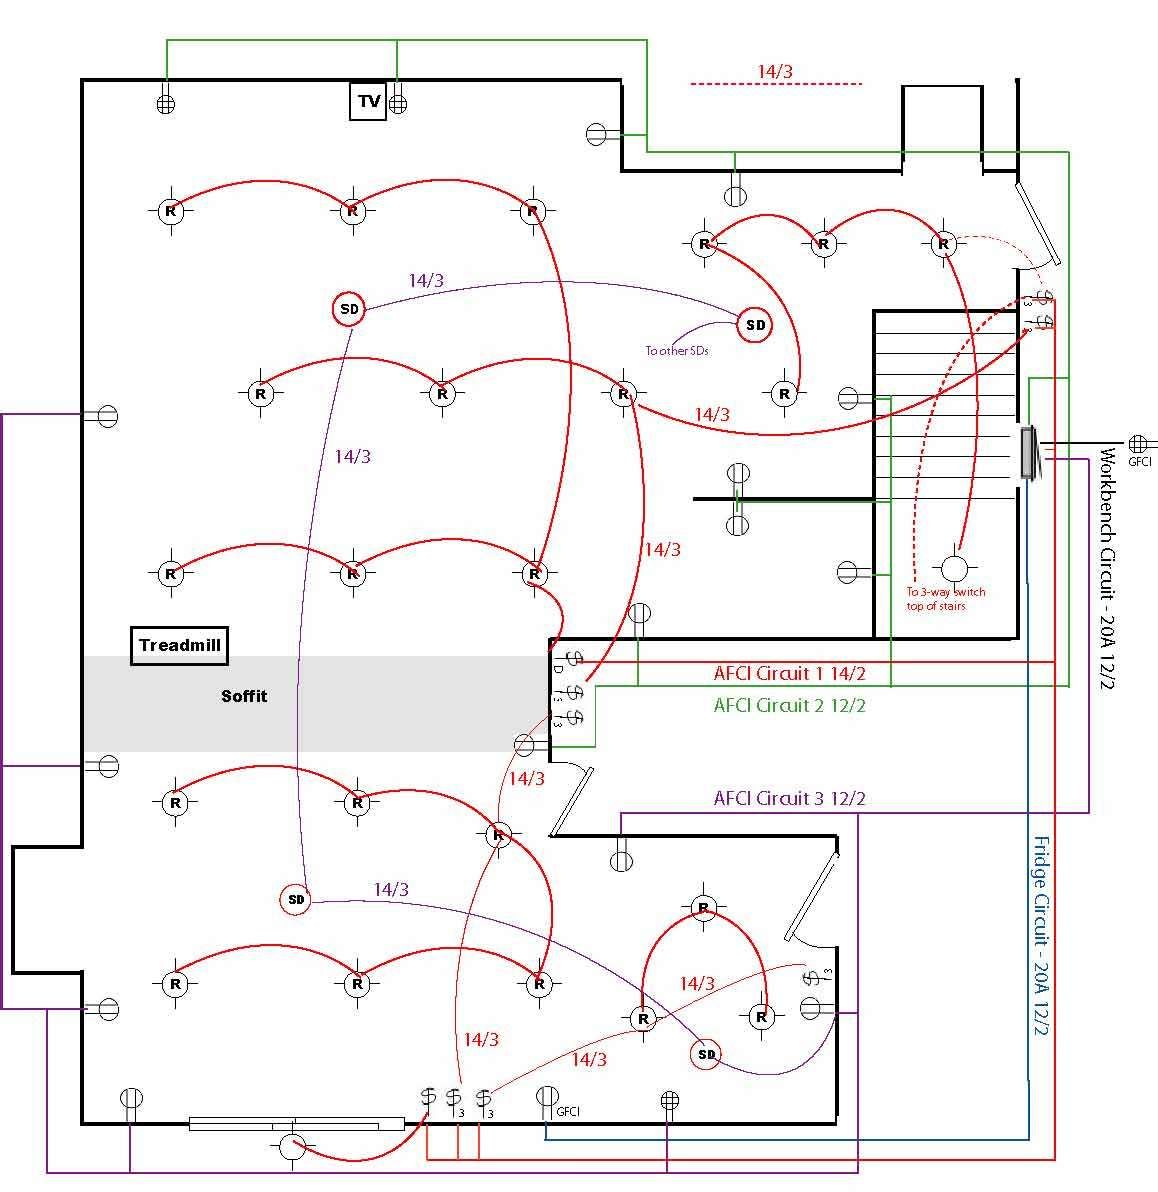 Wiring Diagram Home. Wiring Diagram Home. Wiring Diagram for Smart Home 3  12rma Lift • | Home electrical wiring, House wiring, Electrical wiring  diagramPinterest